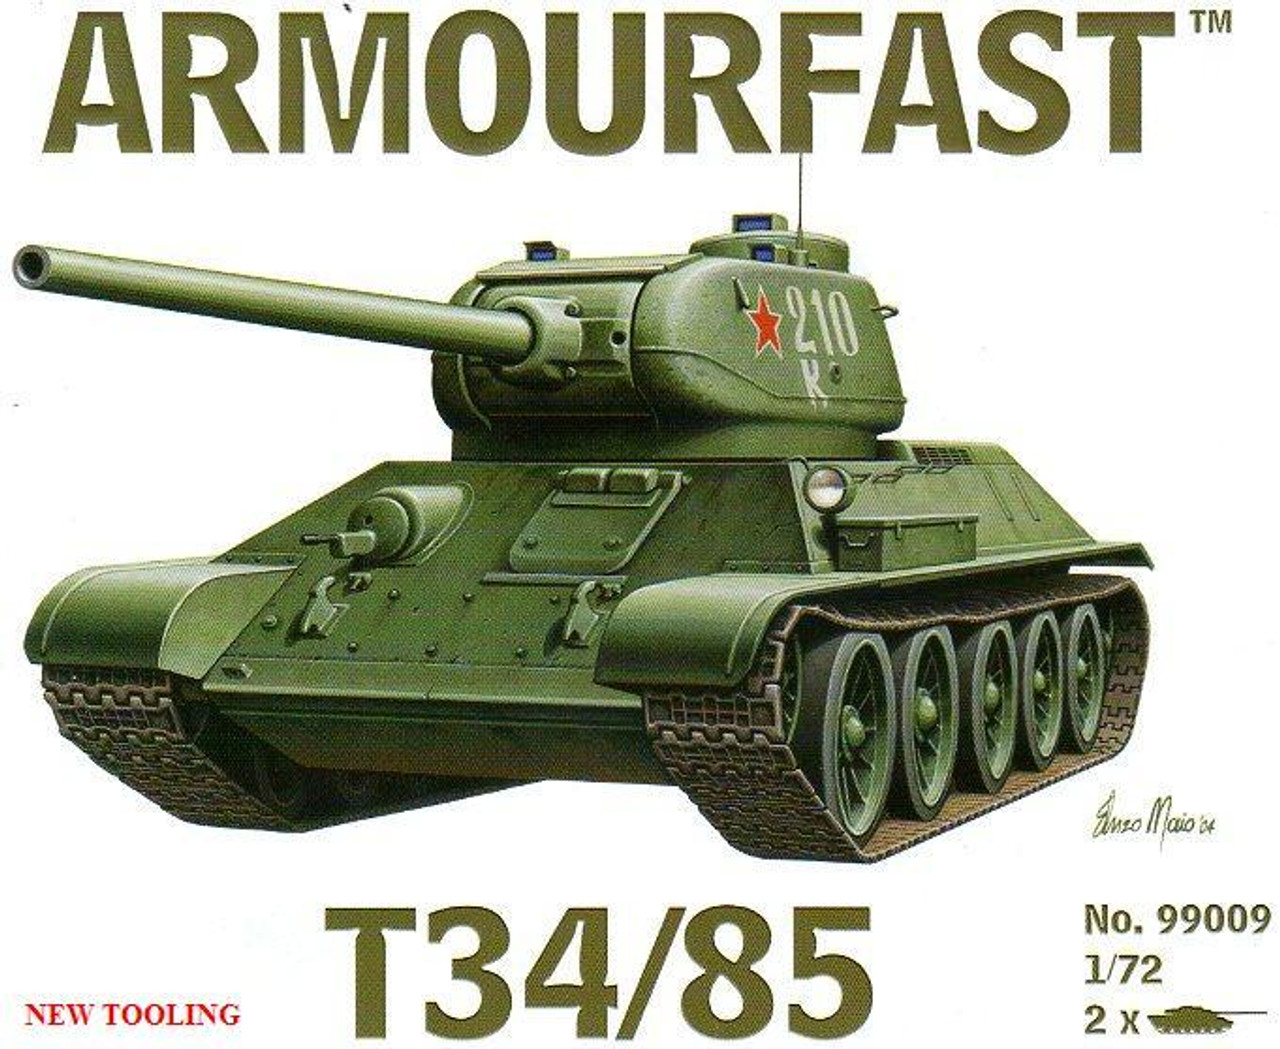 Armourfast 99009 T34/85 1:72 Scale Model Kit (AF99009)